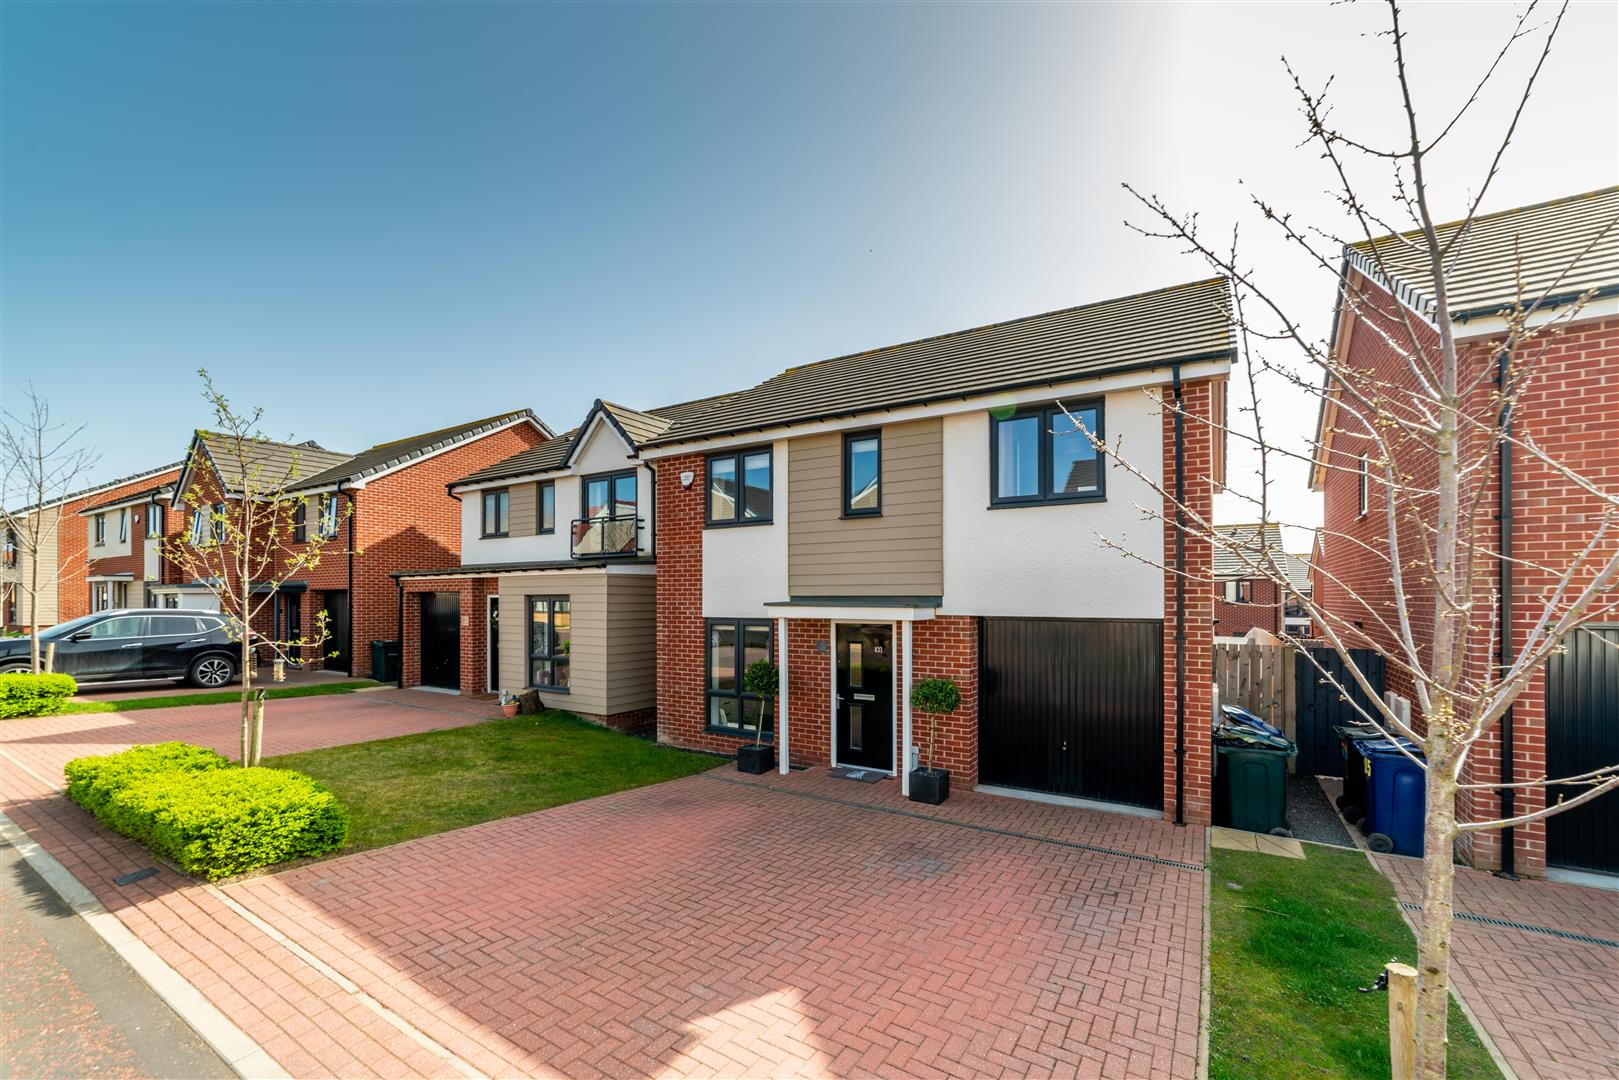 4 bed detached house for sale in Great Park, NE13 9DB, NE13